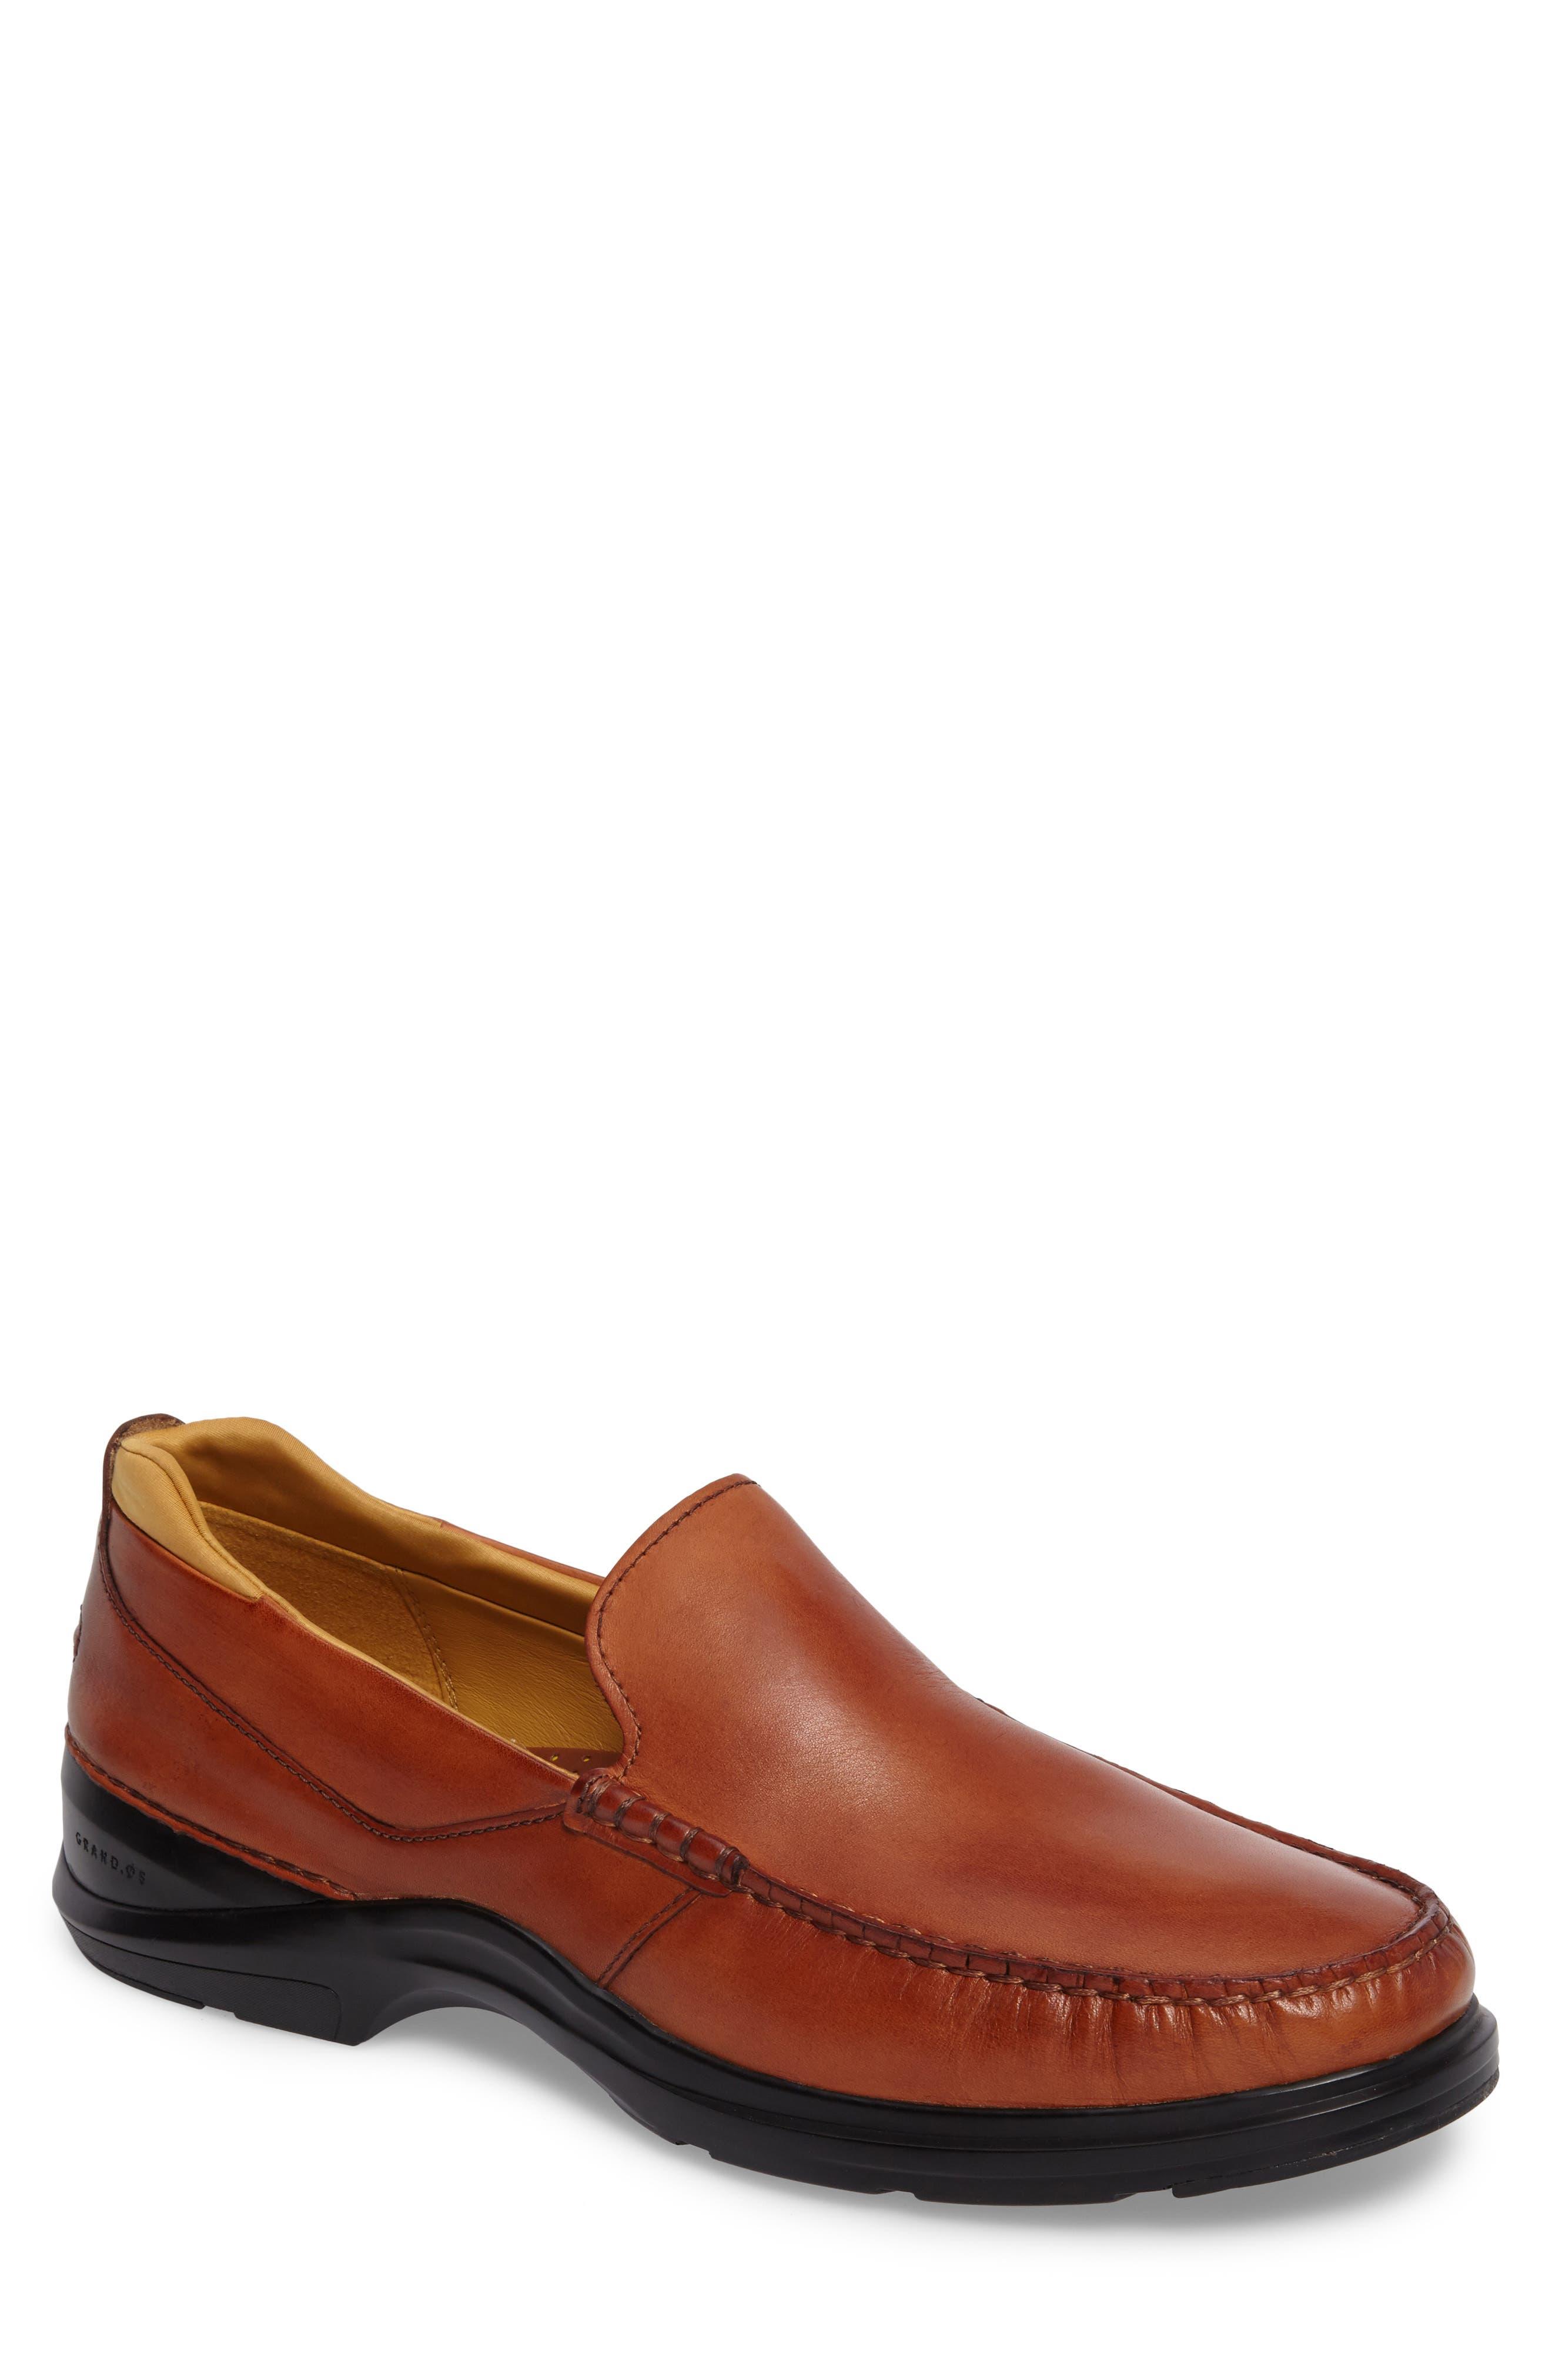 Main Image - Cole Haan Bancroft Loafer (Men)